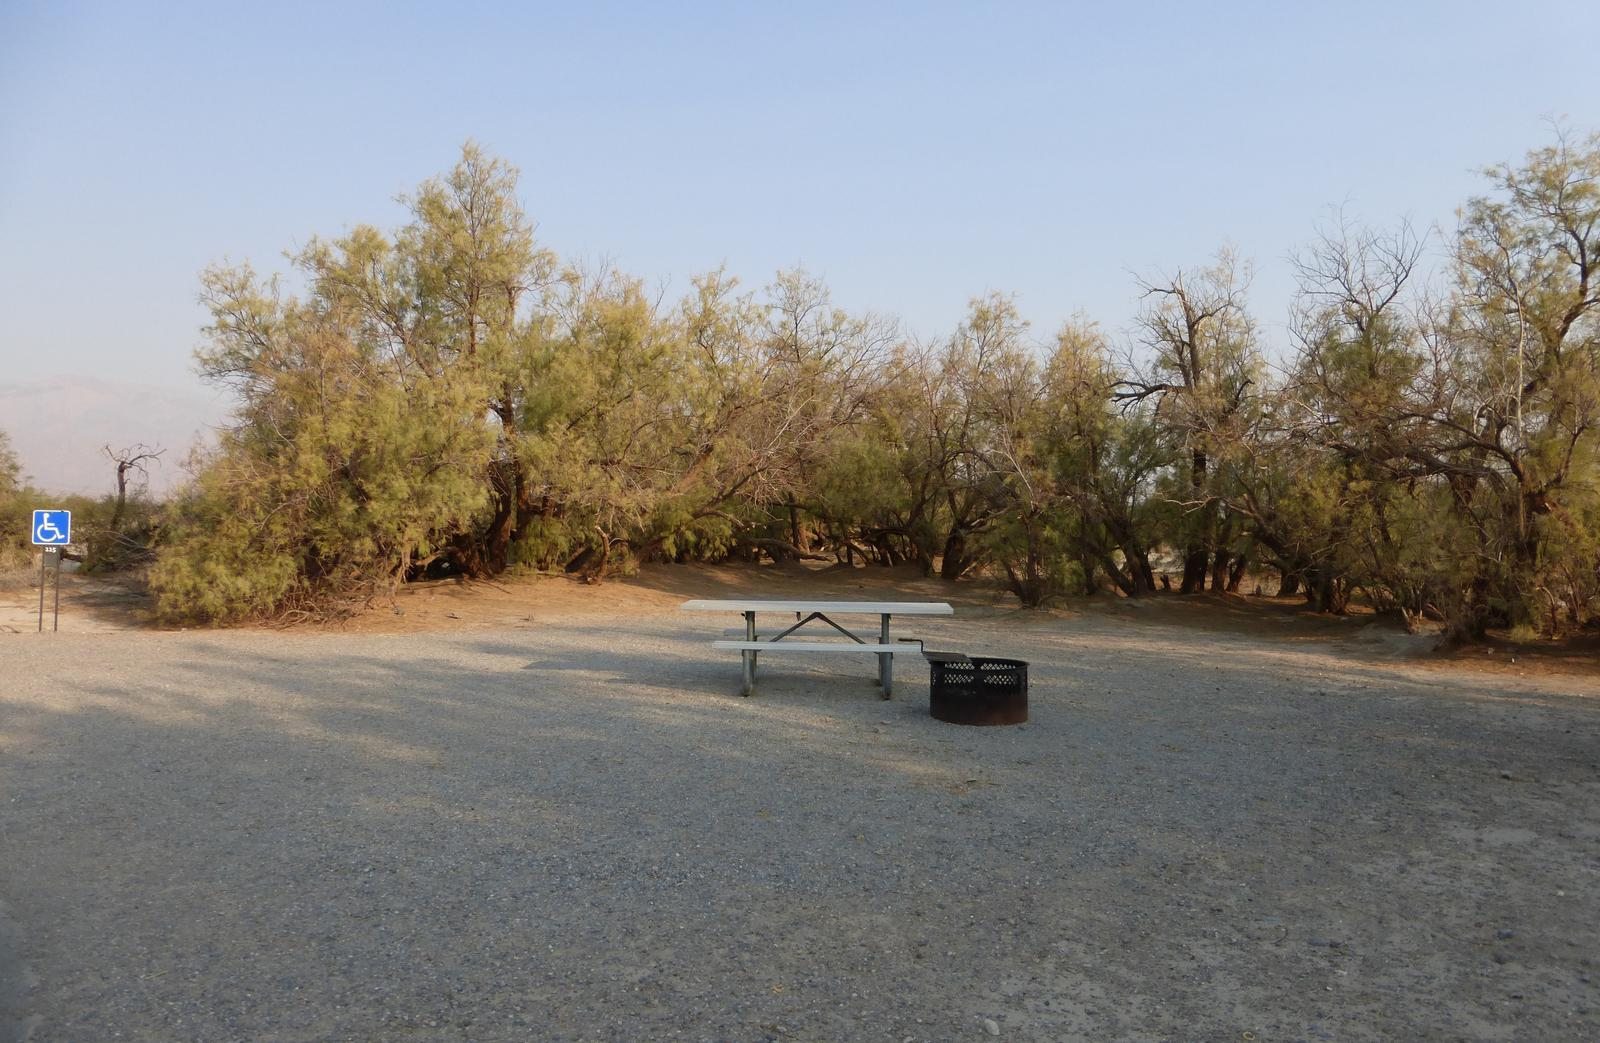 ADA accessible tent only walk in site #115.  No campervans, RV's, or pop up tents.  One accessible firepit with grate and picnic table.  No utilities.